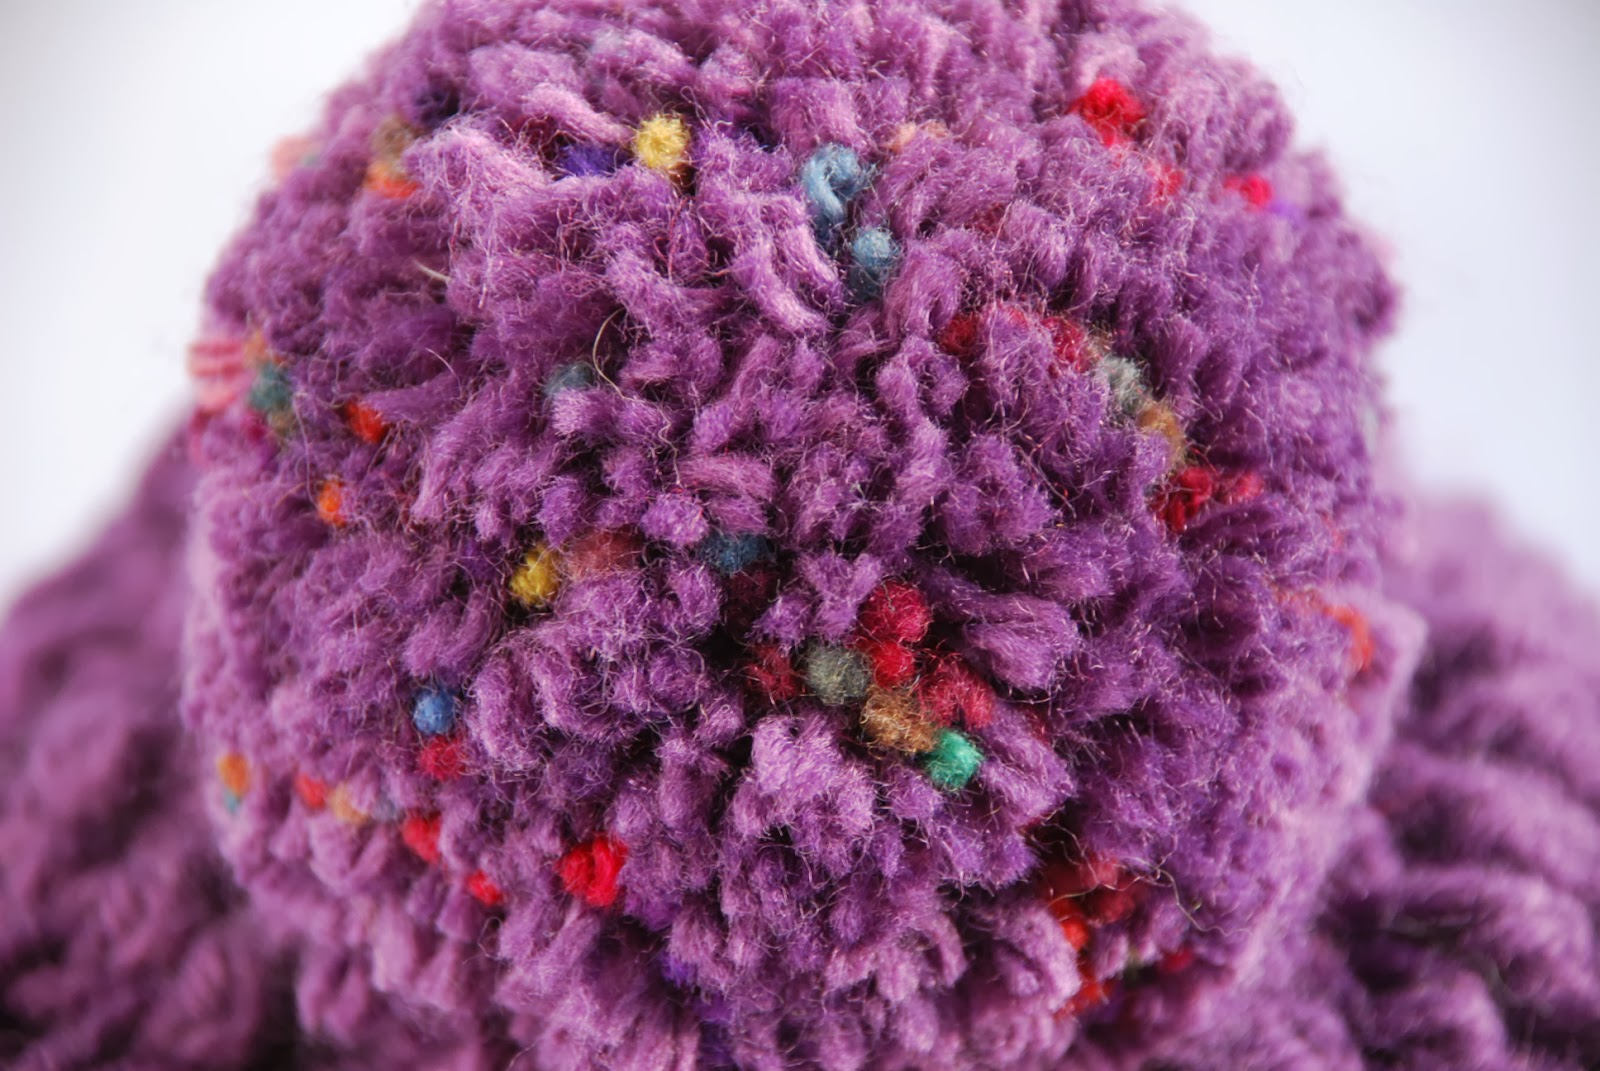 image of pom pom on crocheted hat